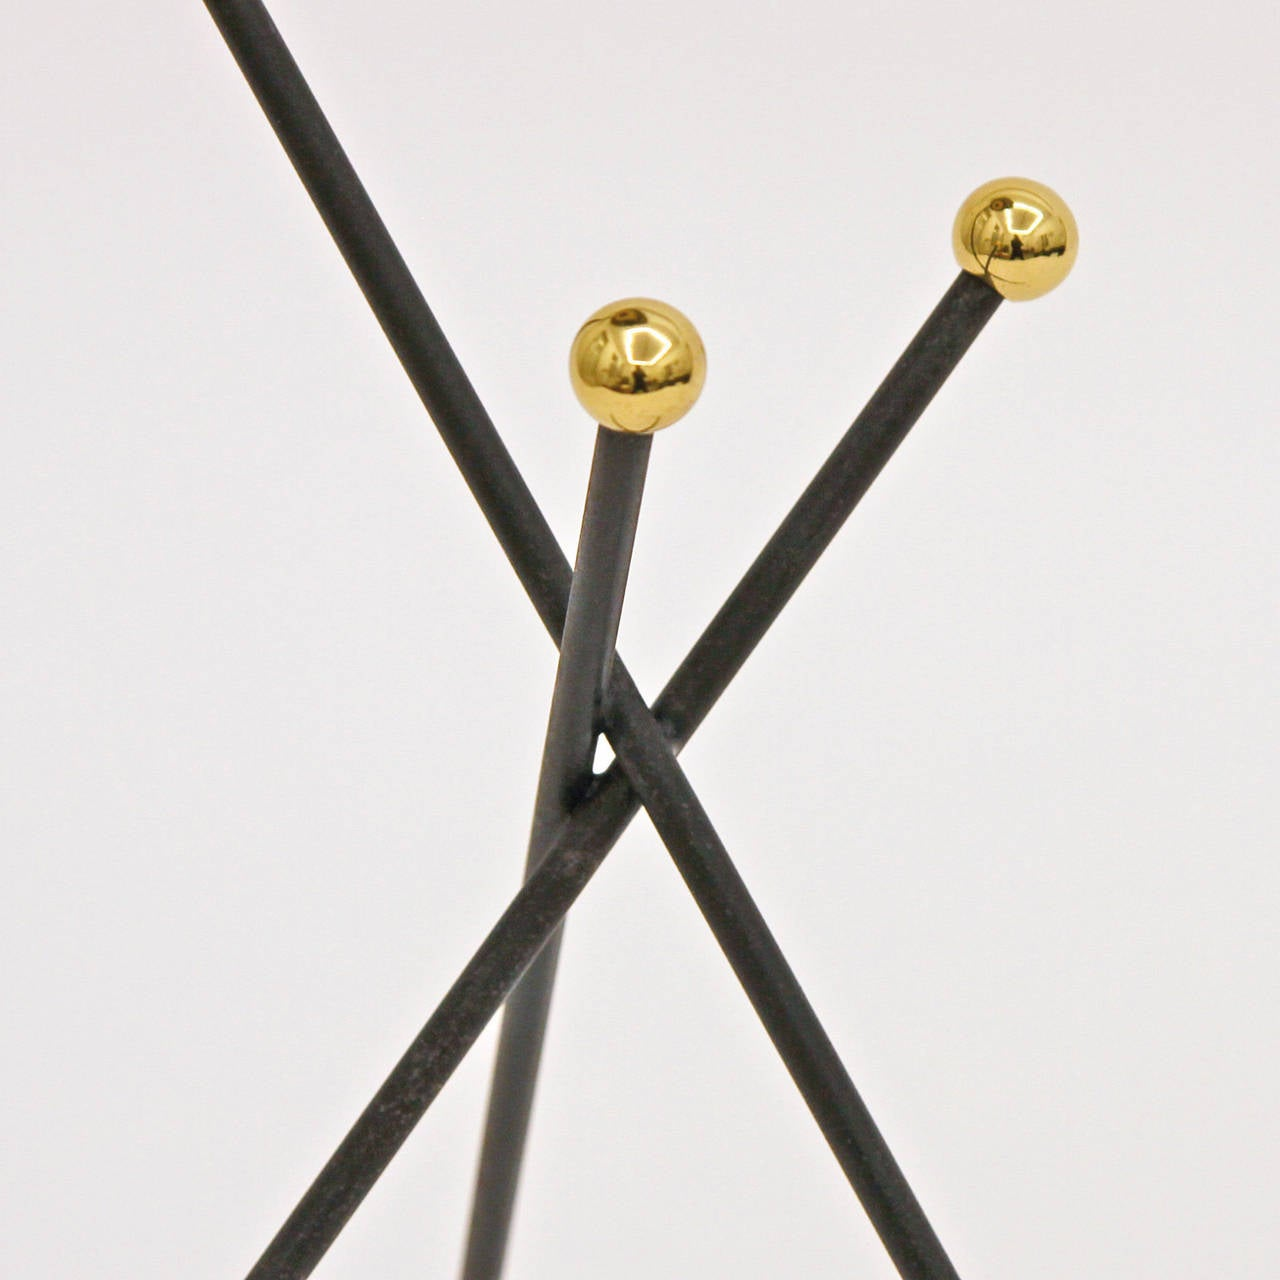 Mid-20th Century French Modernist Tripod Ashtray or Catch-All, 1950s For Sale